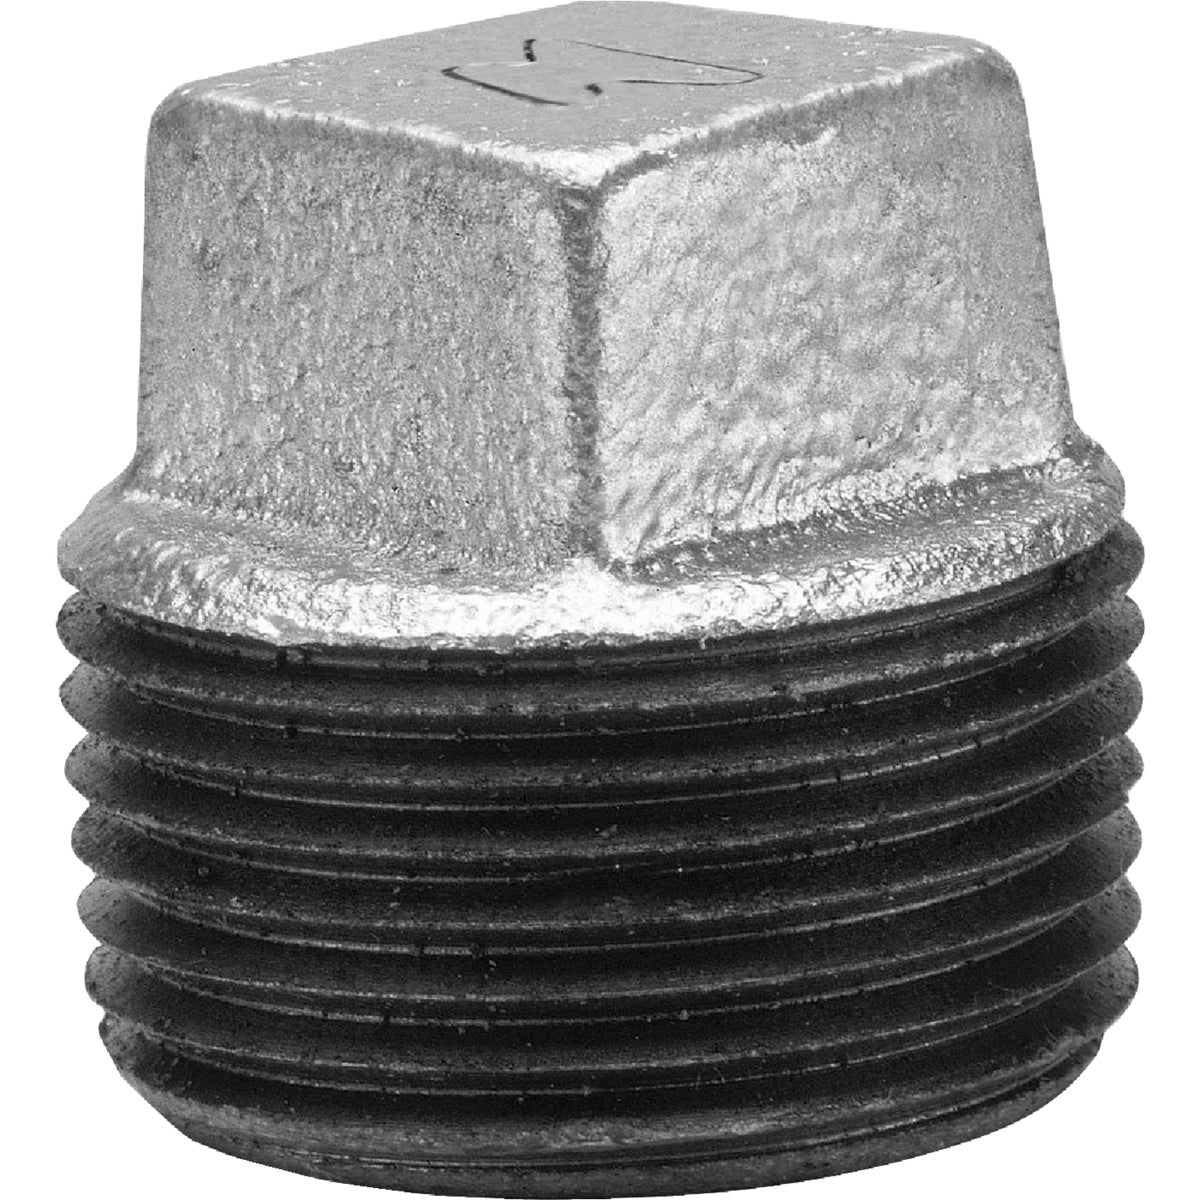 "3/8"" GALV SQ PLUG - 8700159802 by Anvil International"